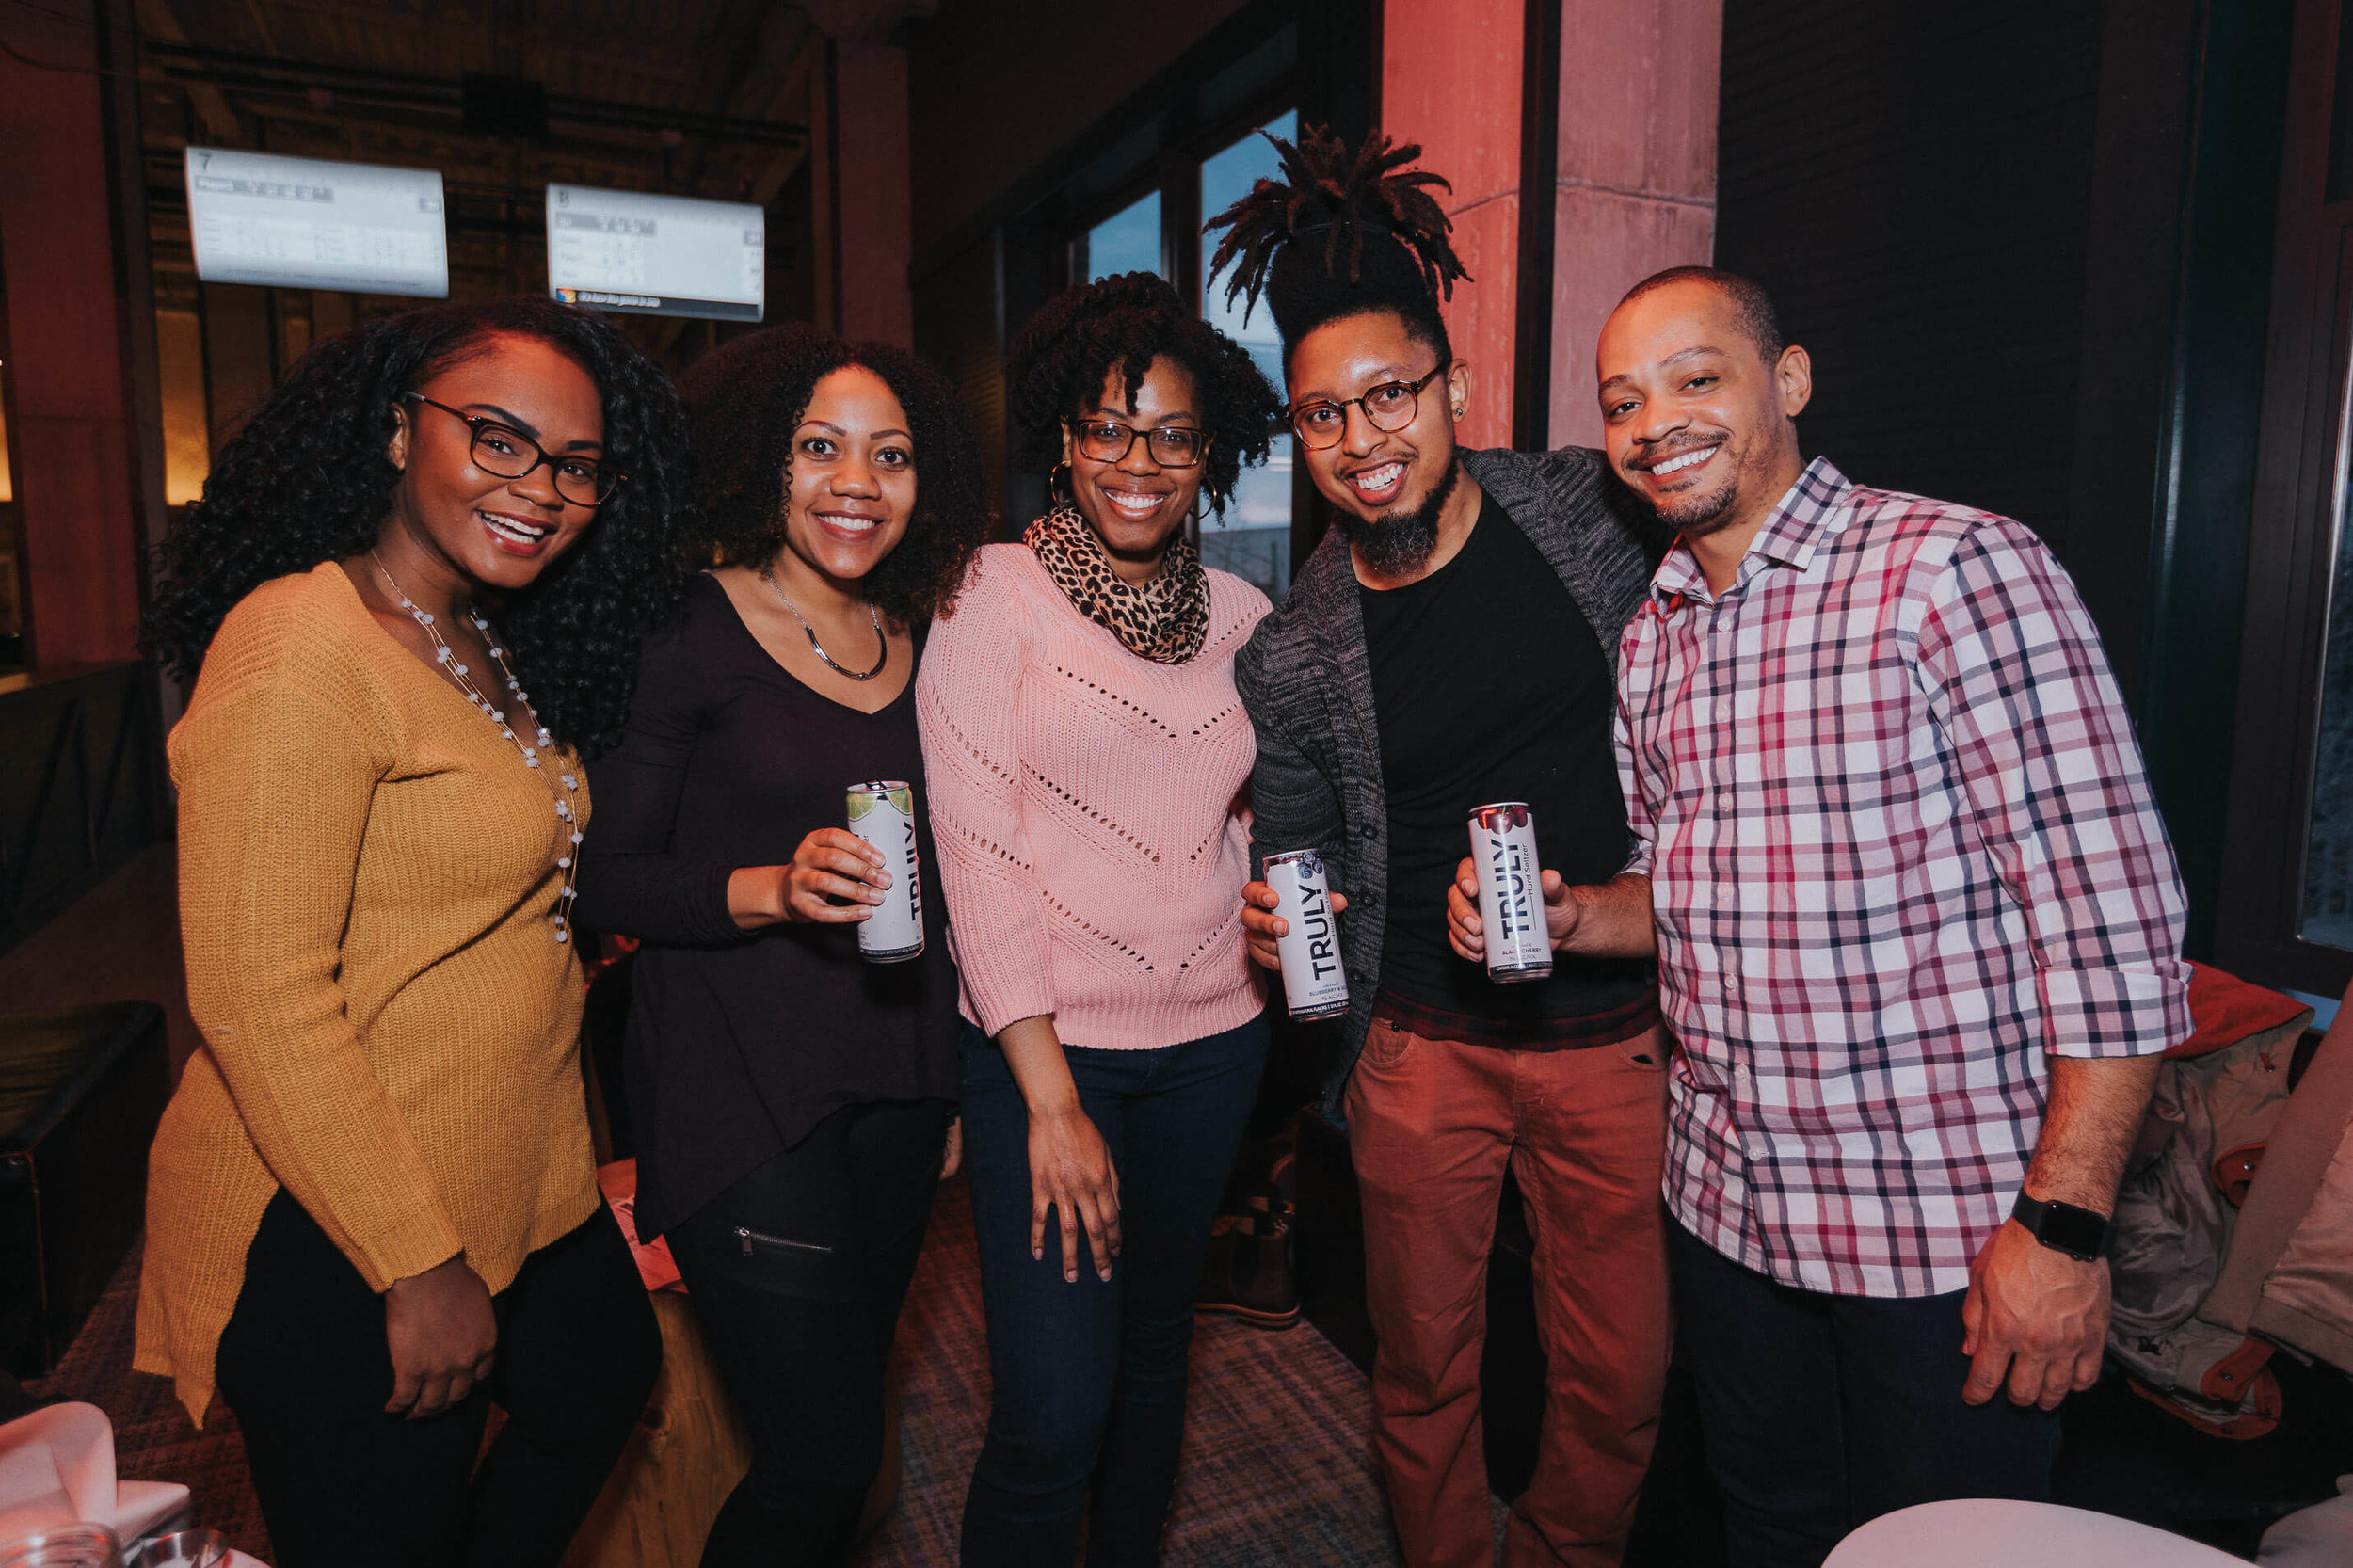 chicago branded event photography_chicago-branded-event-chicago-vs-chicago-punch-bowl-social_-2.jpg